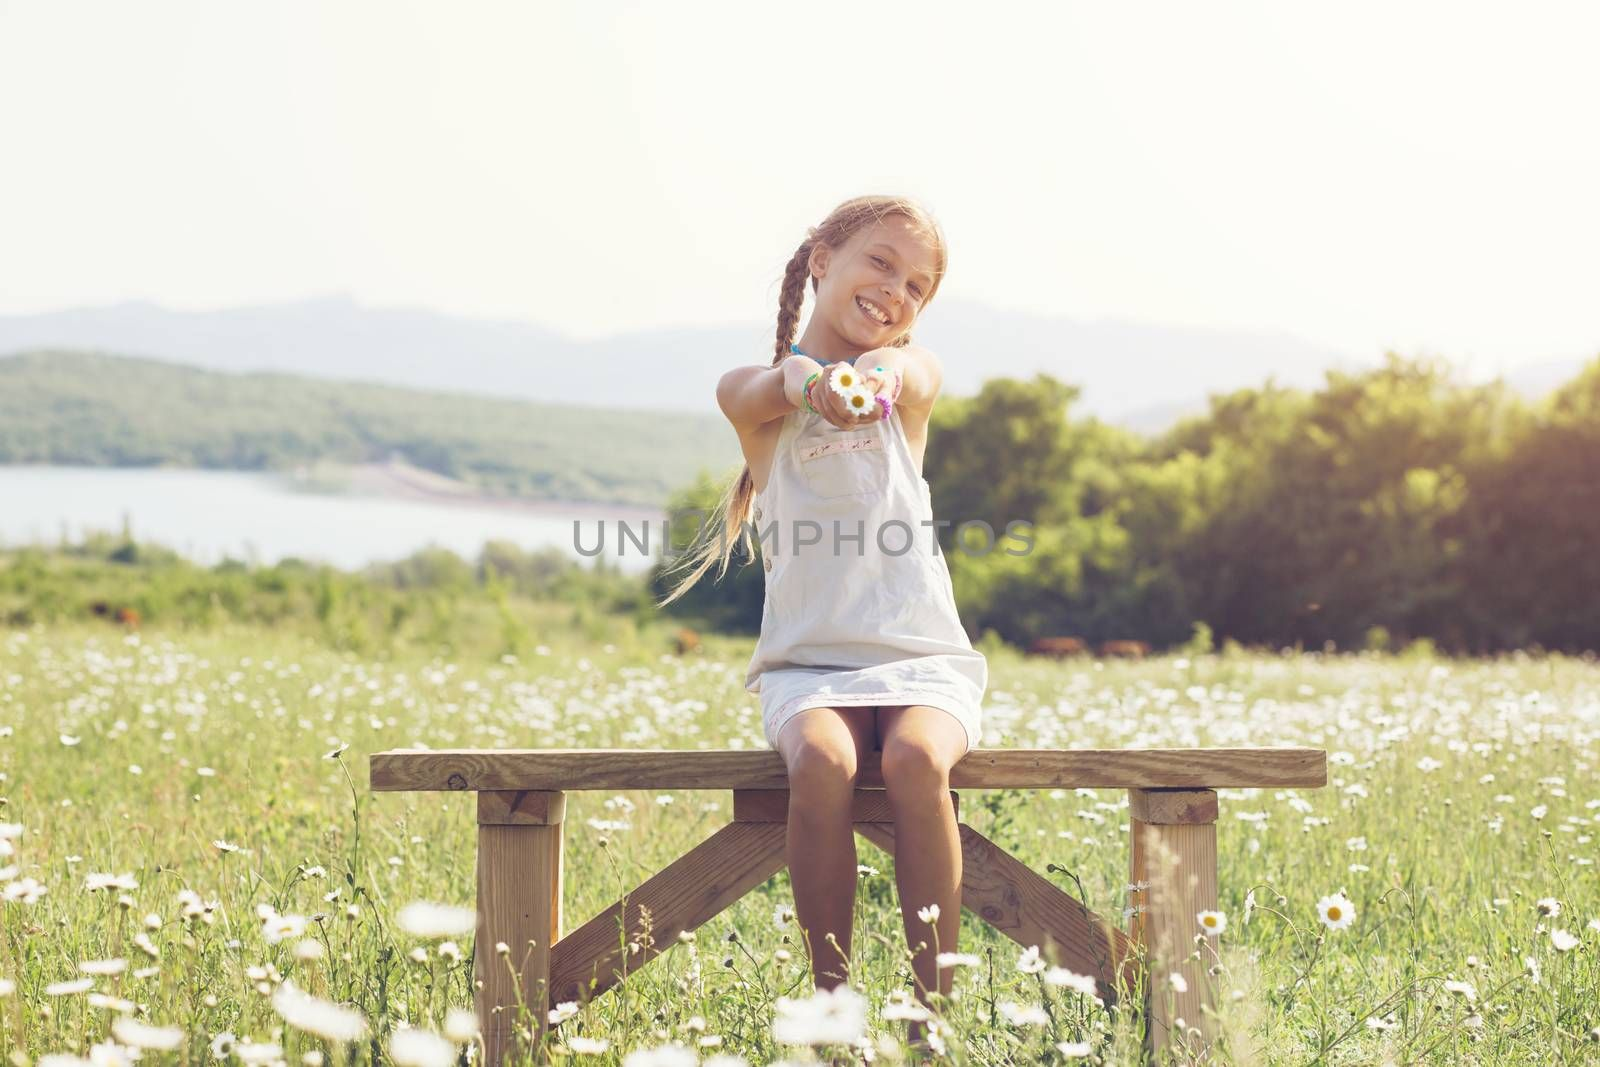 8 years old preteen girl sitting on rustic bench in flower field